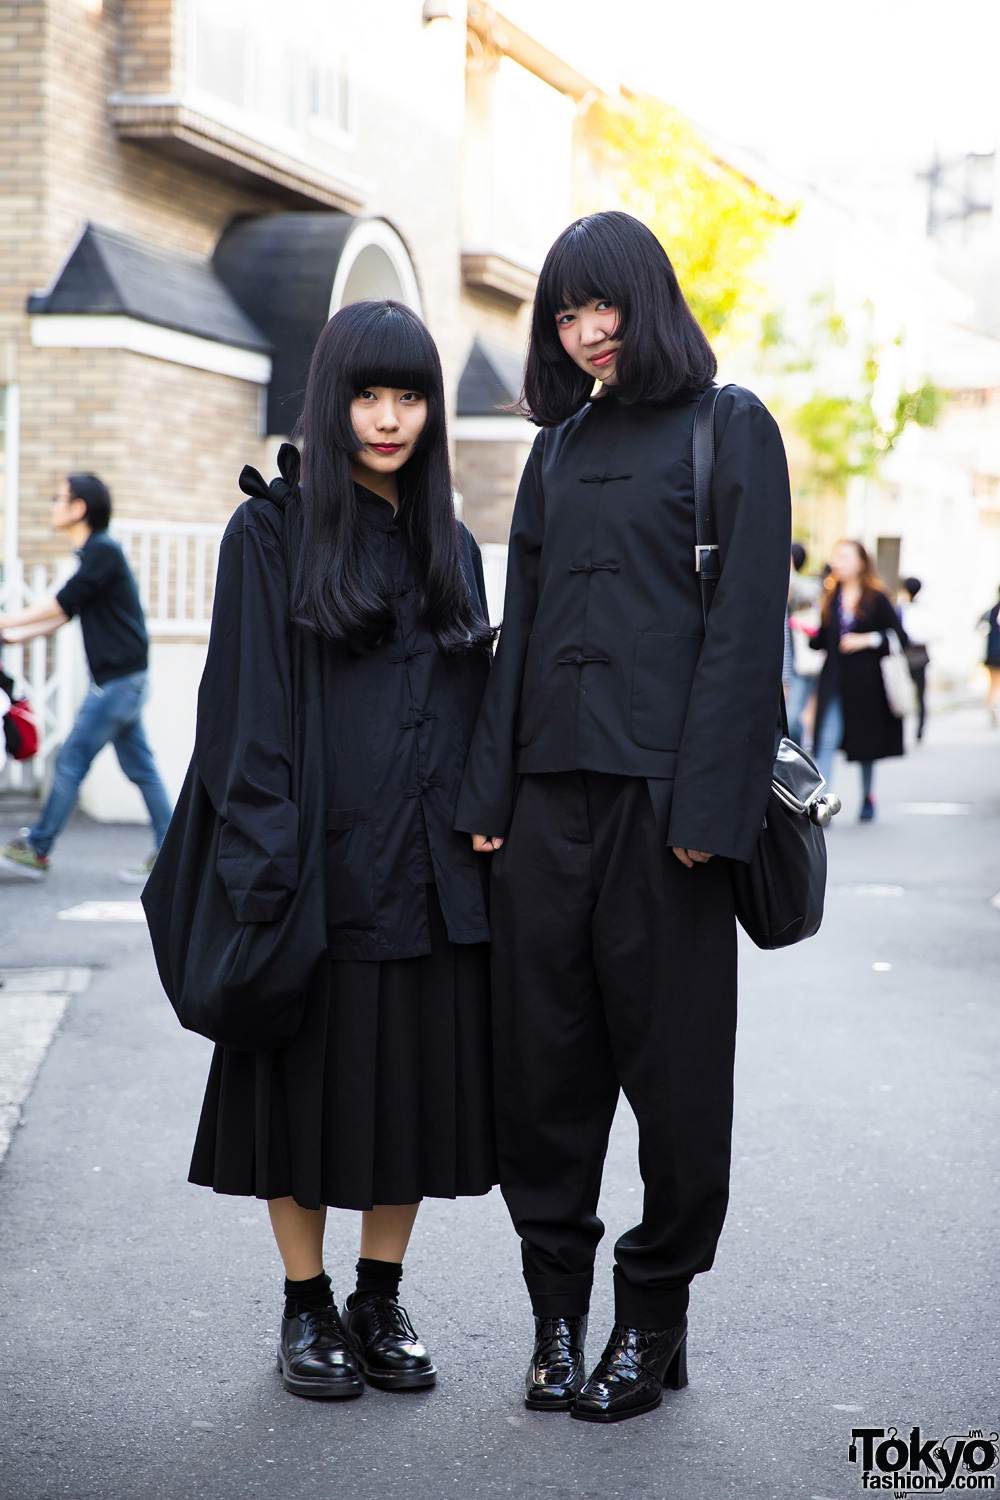 All Black Japanese Minimalist Fashion W Comme Des Garcons